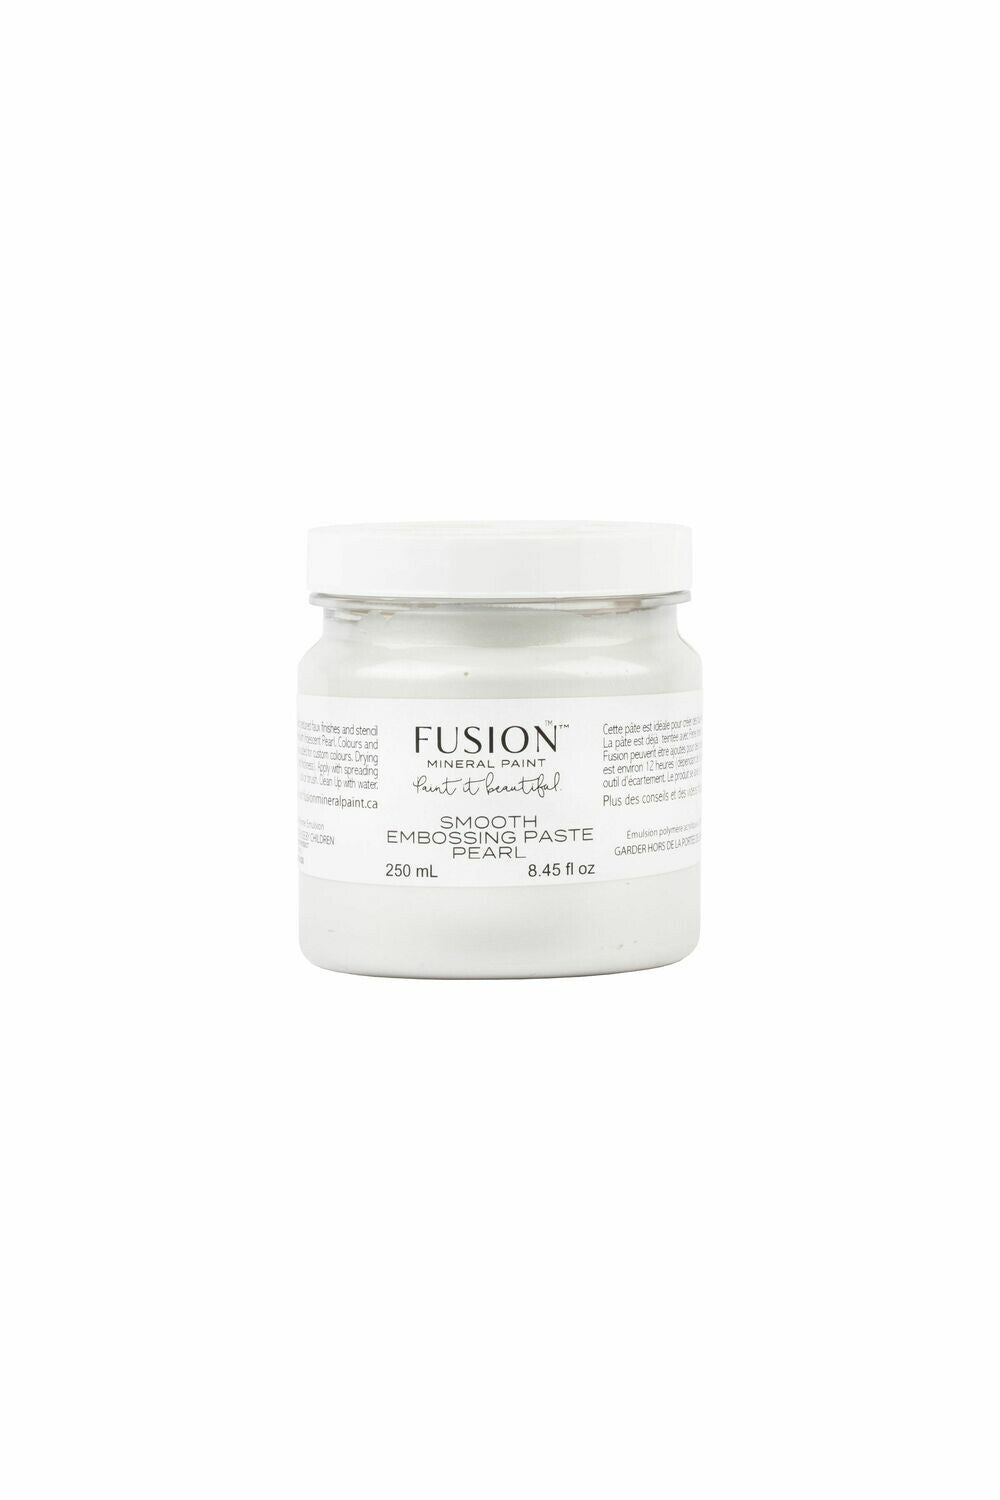 Smooth Embossing Pearl Paste 250 ml